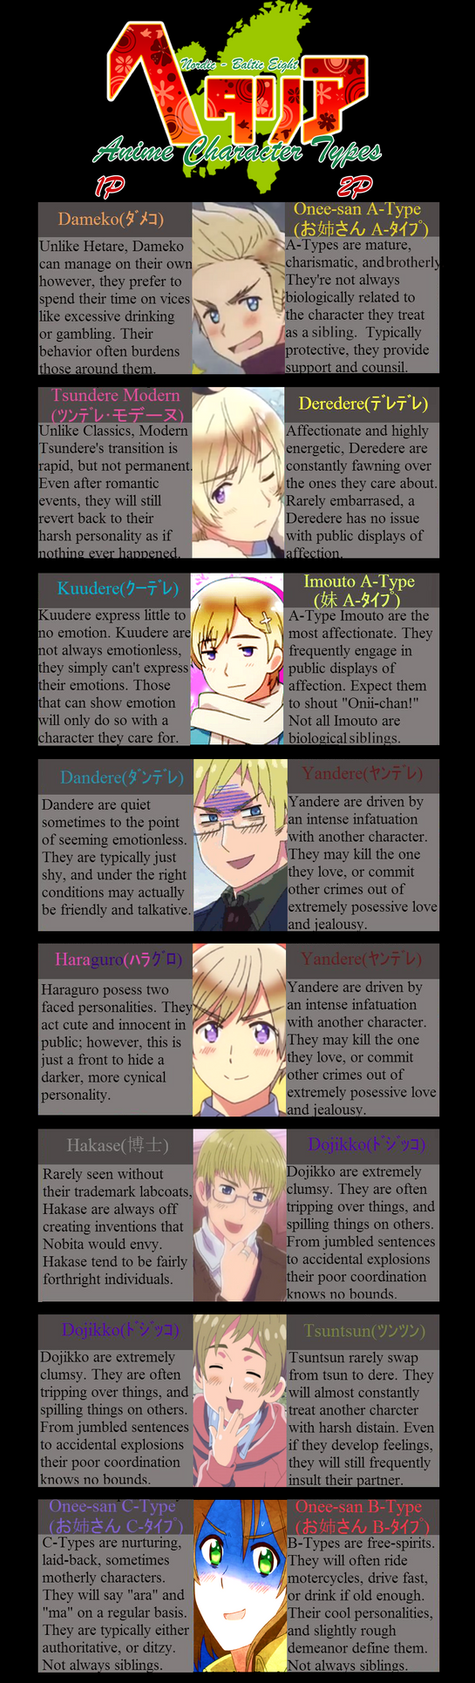 Type B Anime Characters : Fan fics and other writings by iggwilv on deviantart